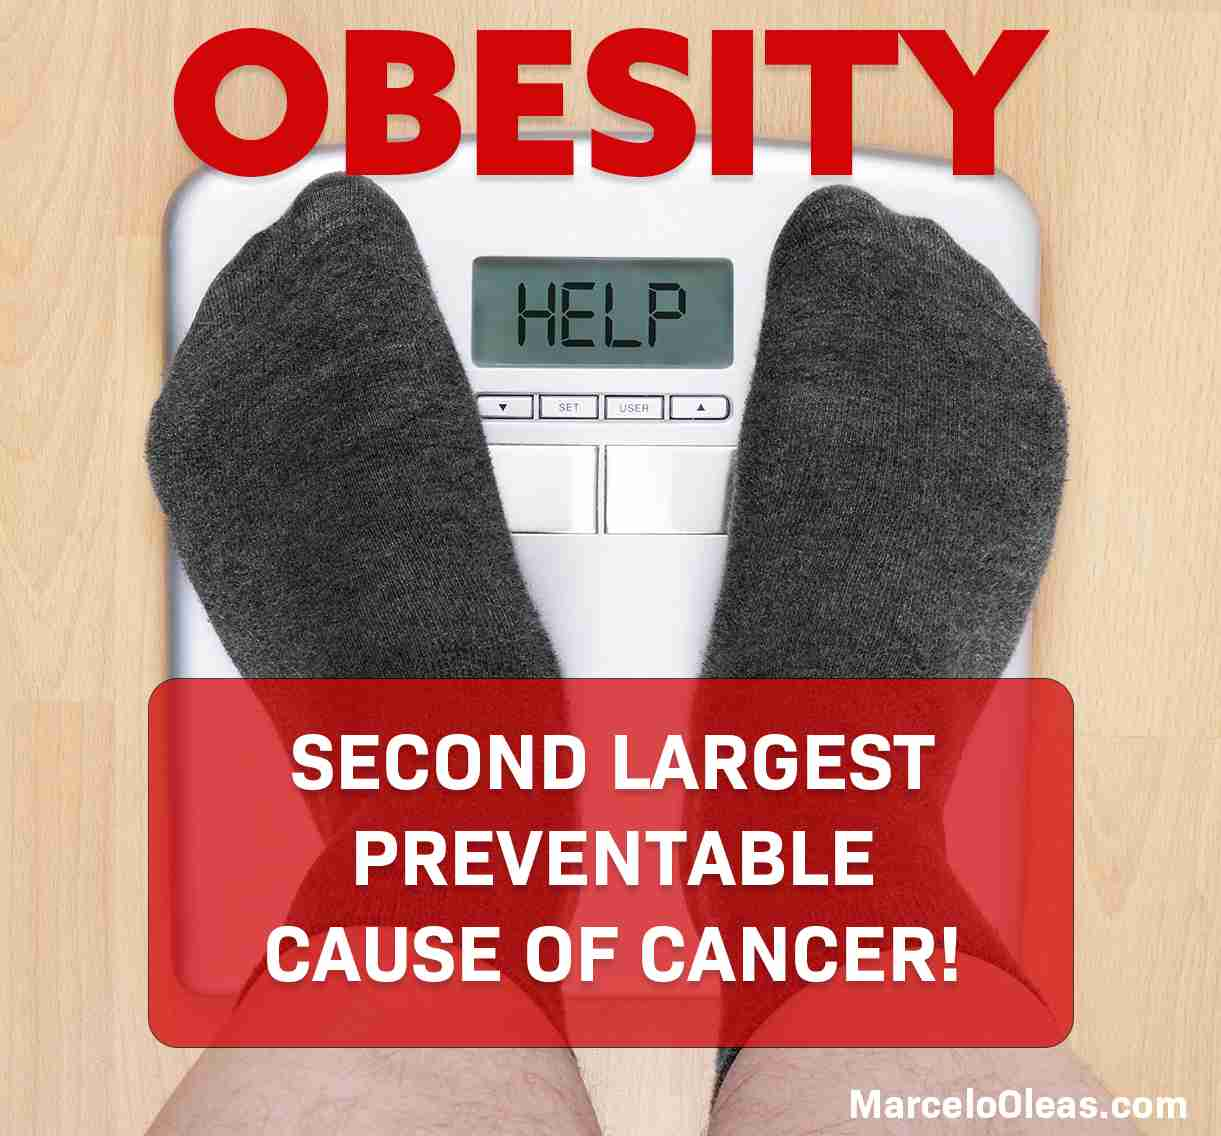 Obesity and risk of cancer